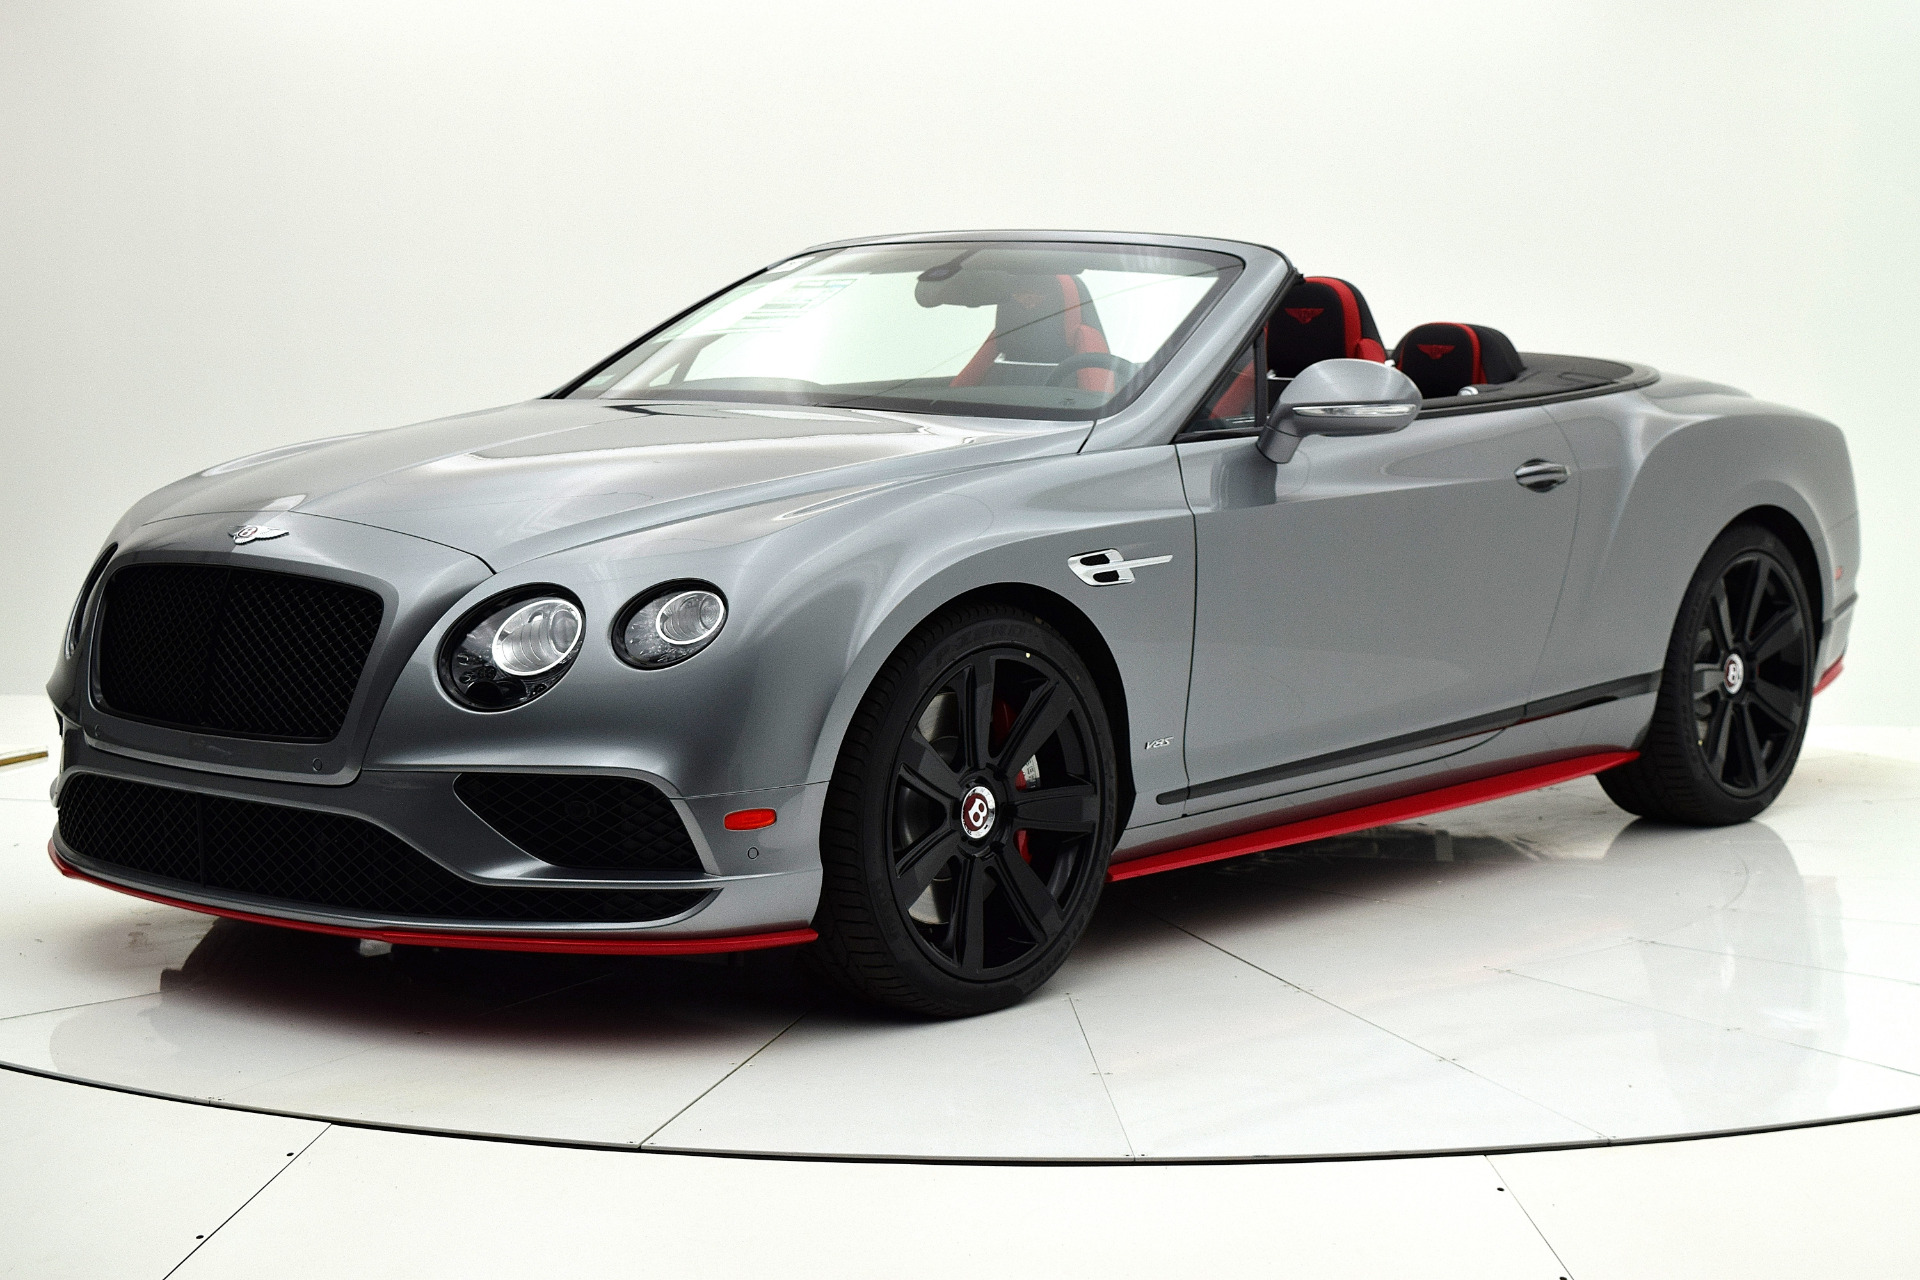 Used 2017 Bentley Continental GT V8 S Convertible Black Edition for sale Sold at F.C. Kerbeck Aston Martin in Palmyra NJ 08065 2